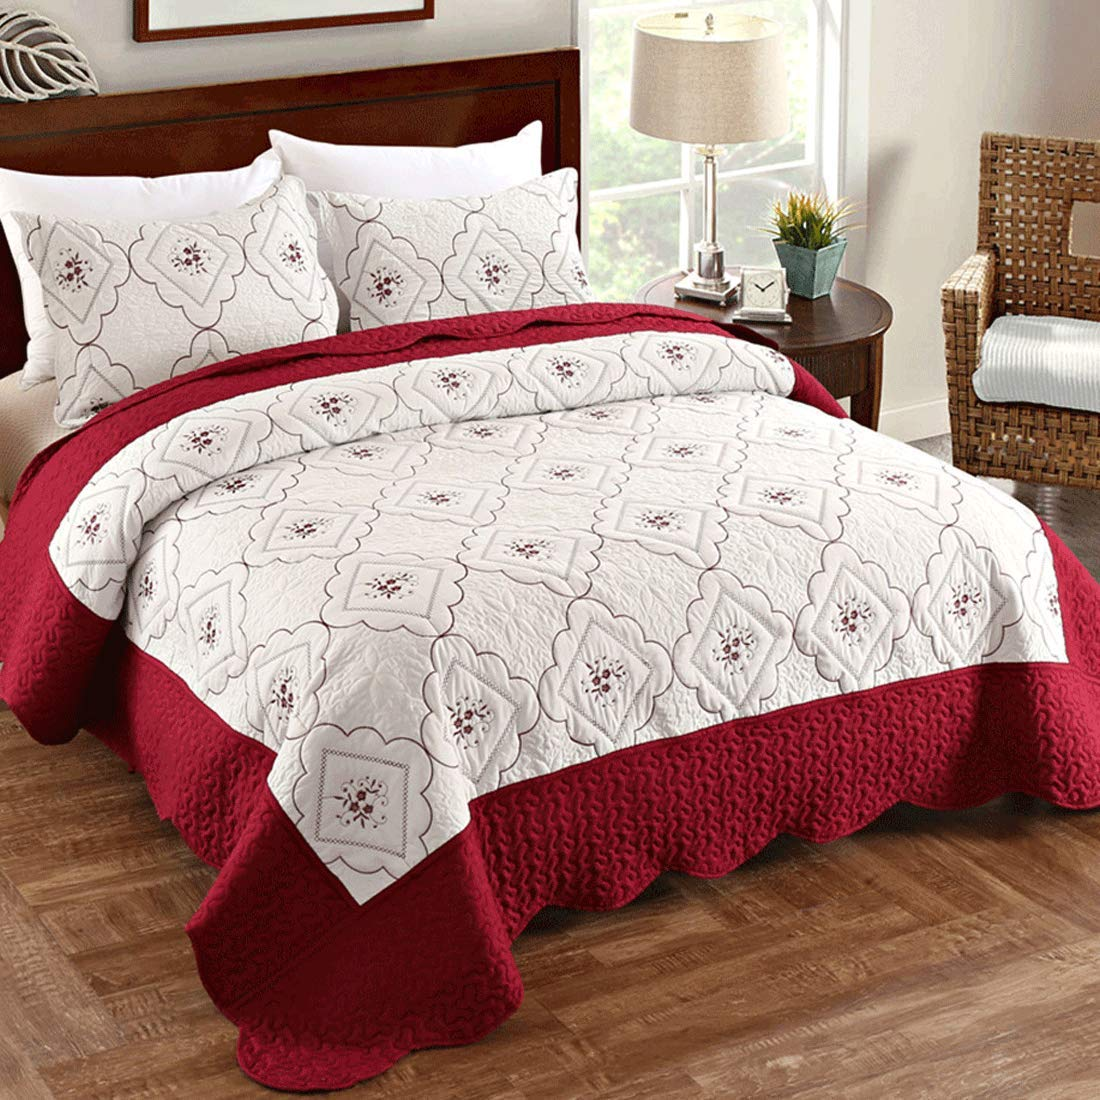 Embroidered Coverlet Set Burgundy White,3 Piece(1 Quilt + 2 Pillow Shams)